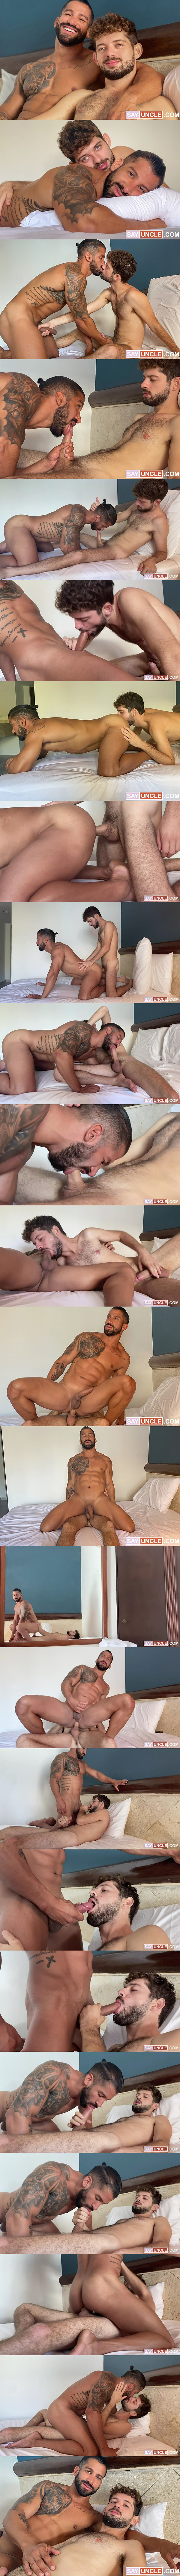 Rob Campos barebacks handsome ripped latino muscle stud Octavio before they give each other facials in Octavio's bottoming debut in Climbed That Chiseled Man at Latinleche 01